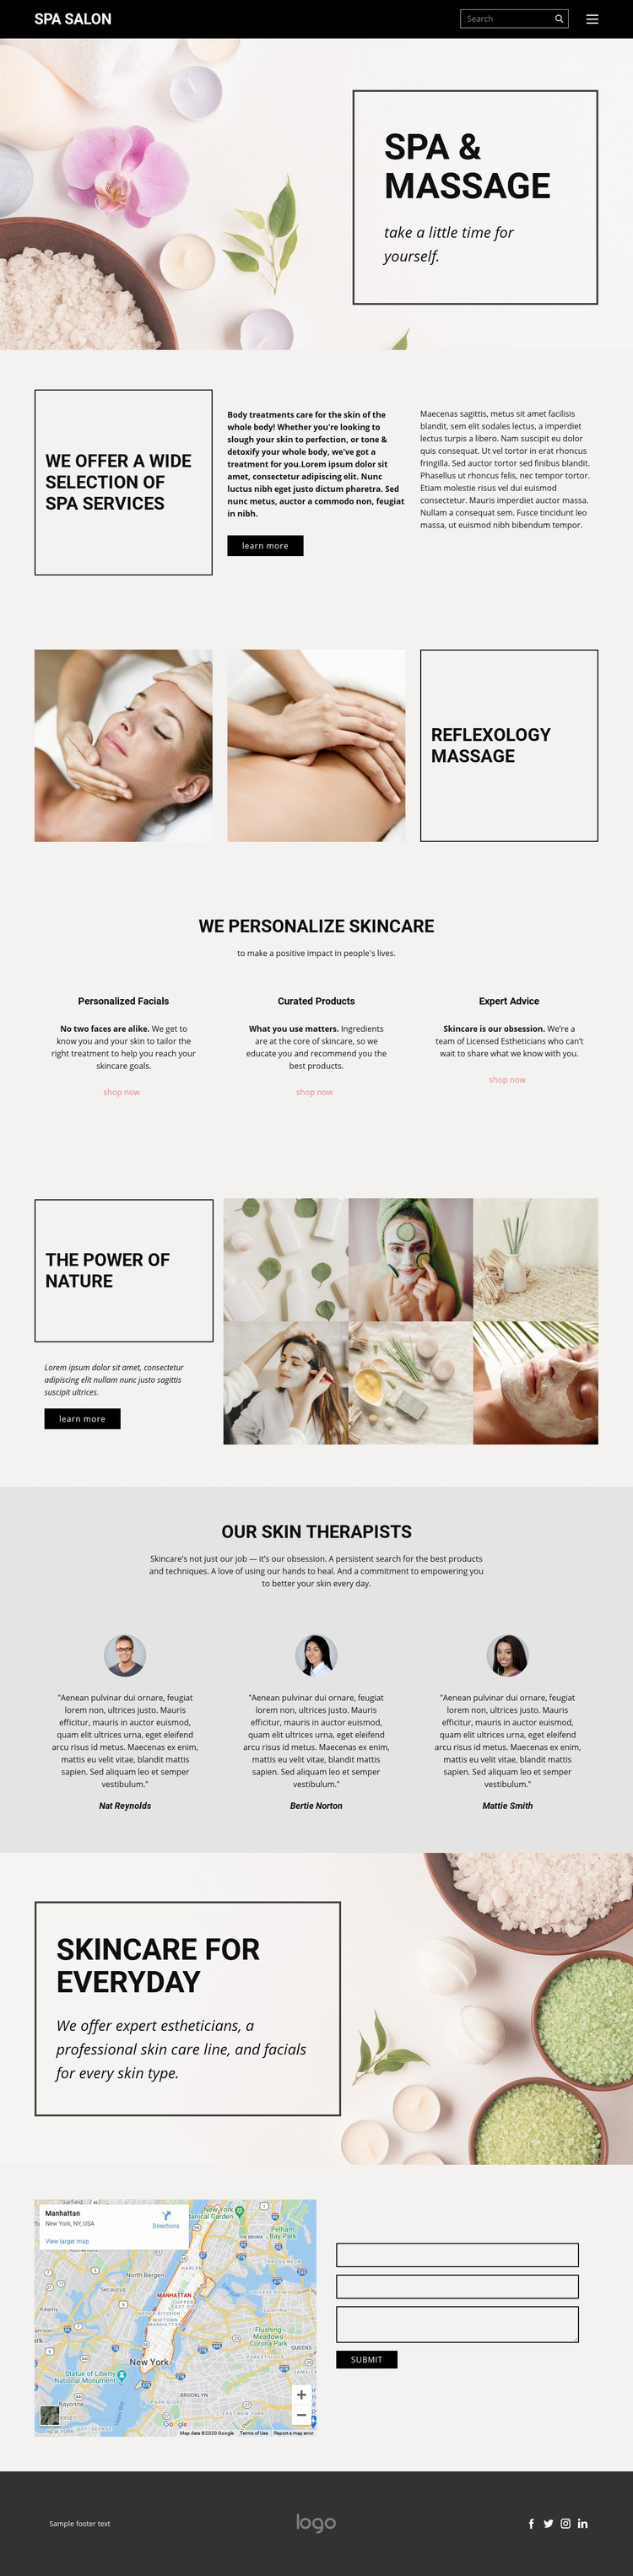 SPA and massage Web Page Design